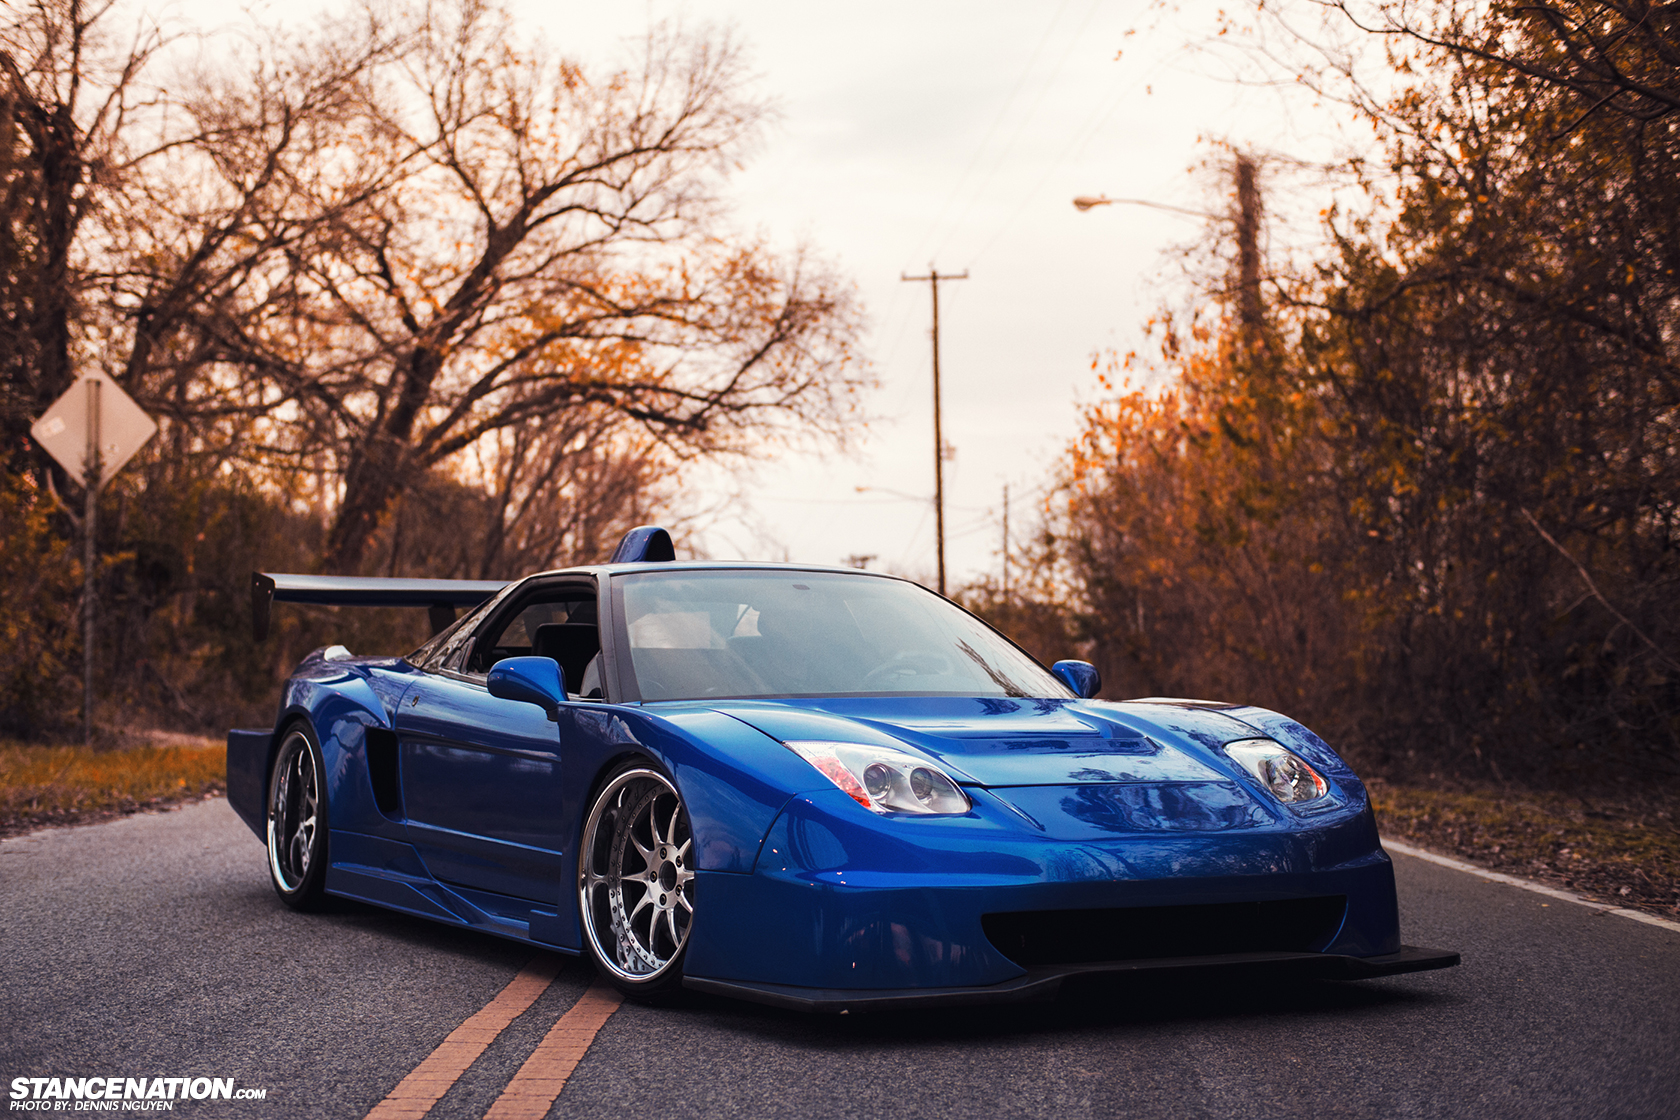 Mind Blowing Brent S Sorcery Jgtc Acura Nsx Stancenation Form Function